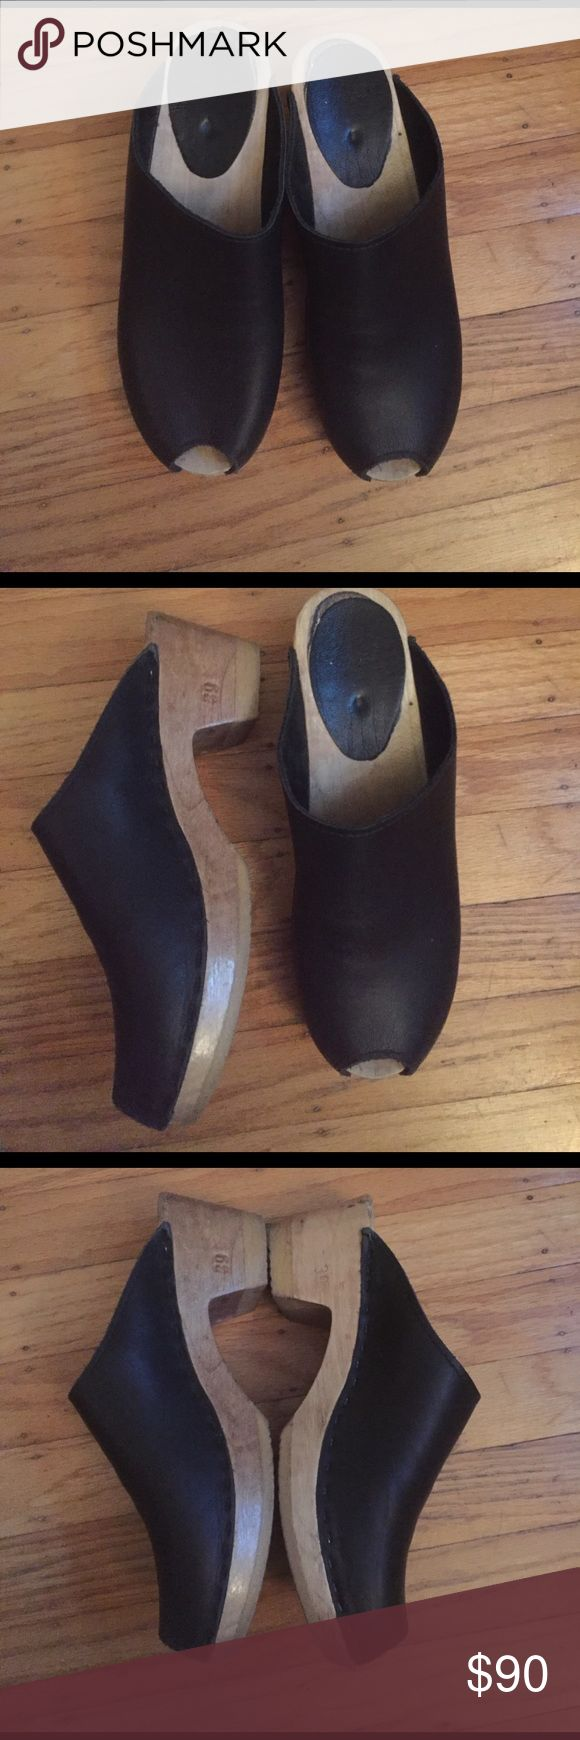 Peep toe sven clogs in black Comfy and loved clogs. Leather mid wool heel. Peep toe. Have been worn but has some life to them still. sven Shoes Mules & Clogs